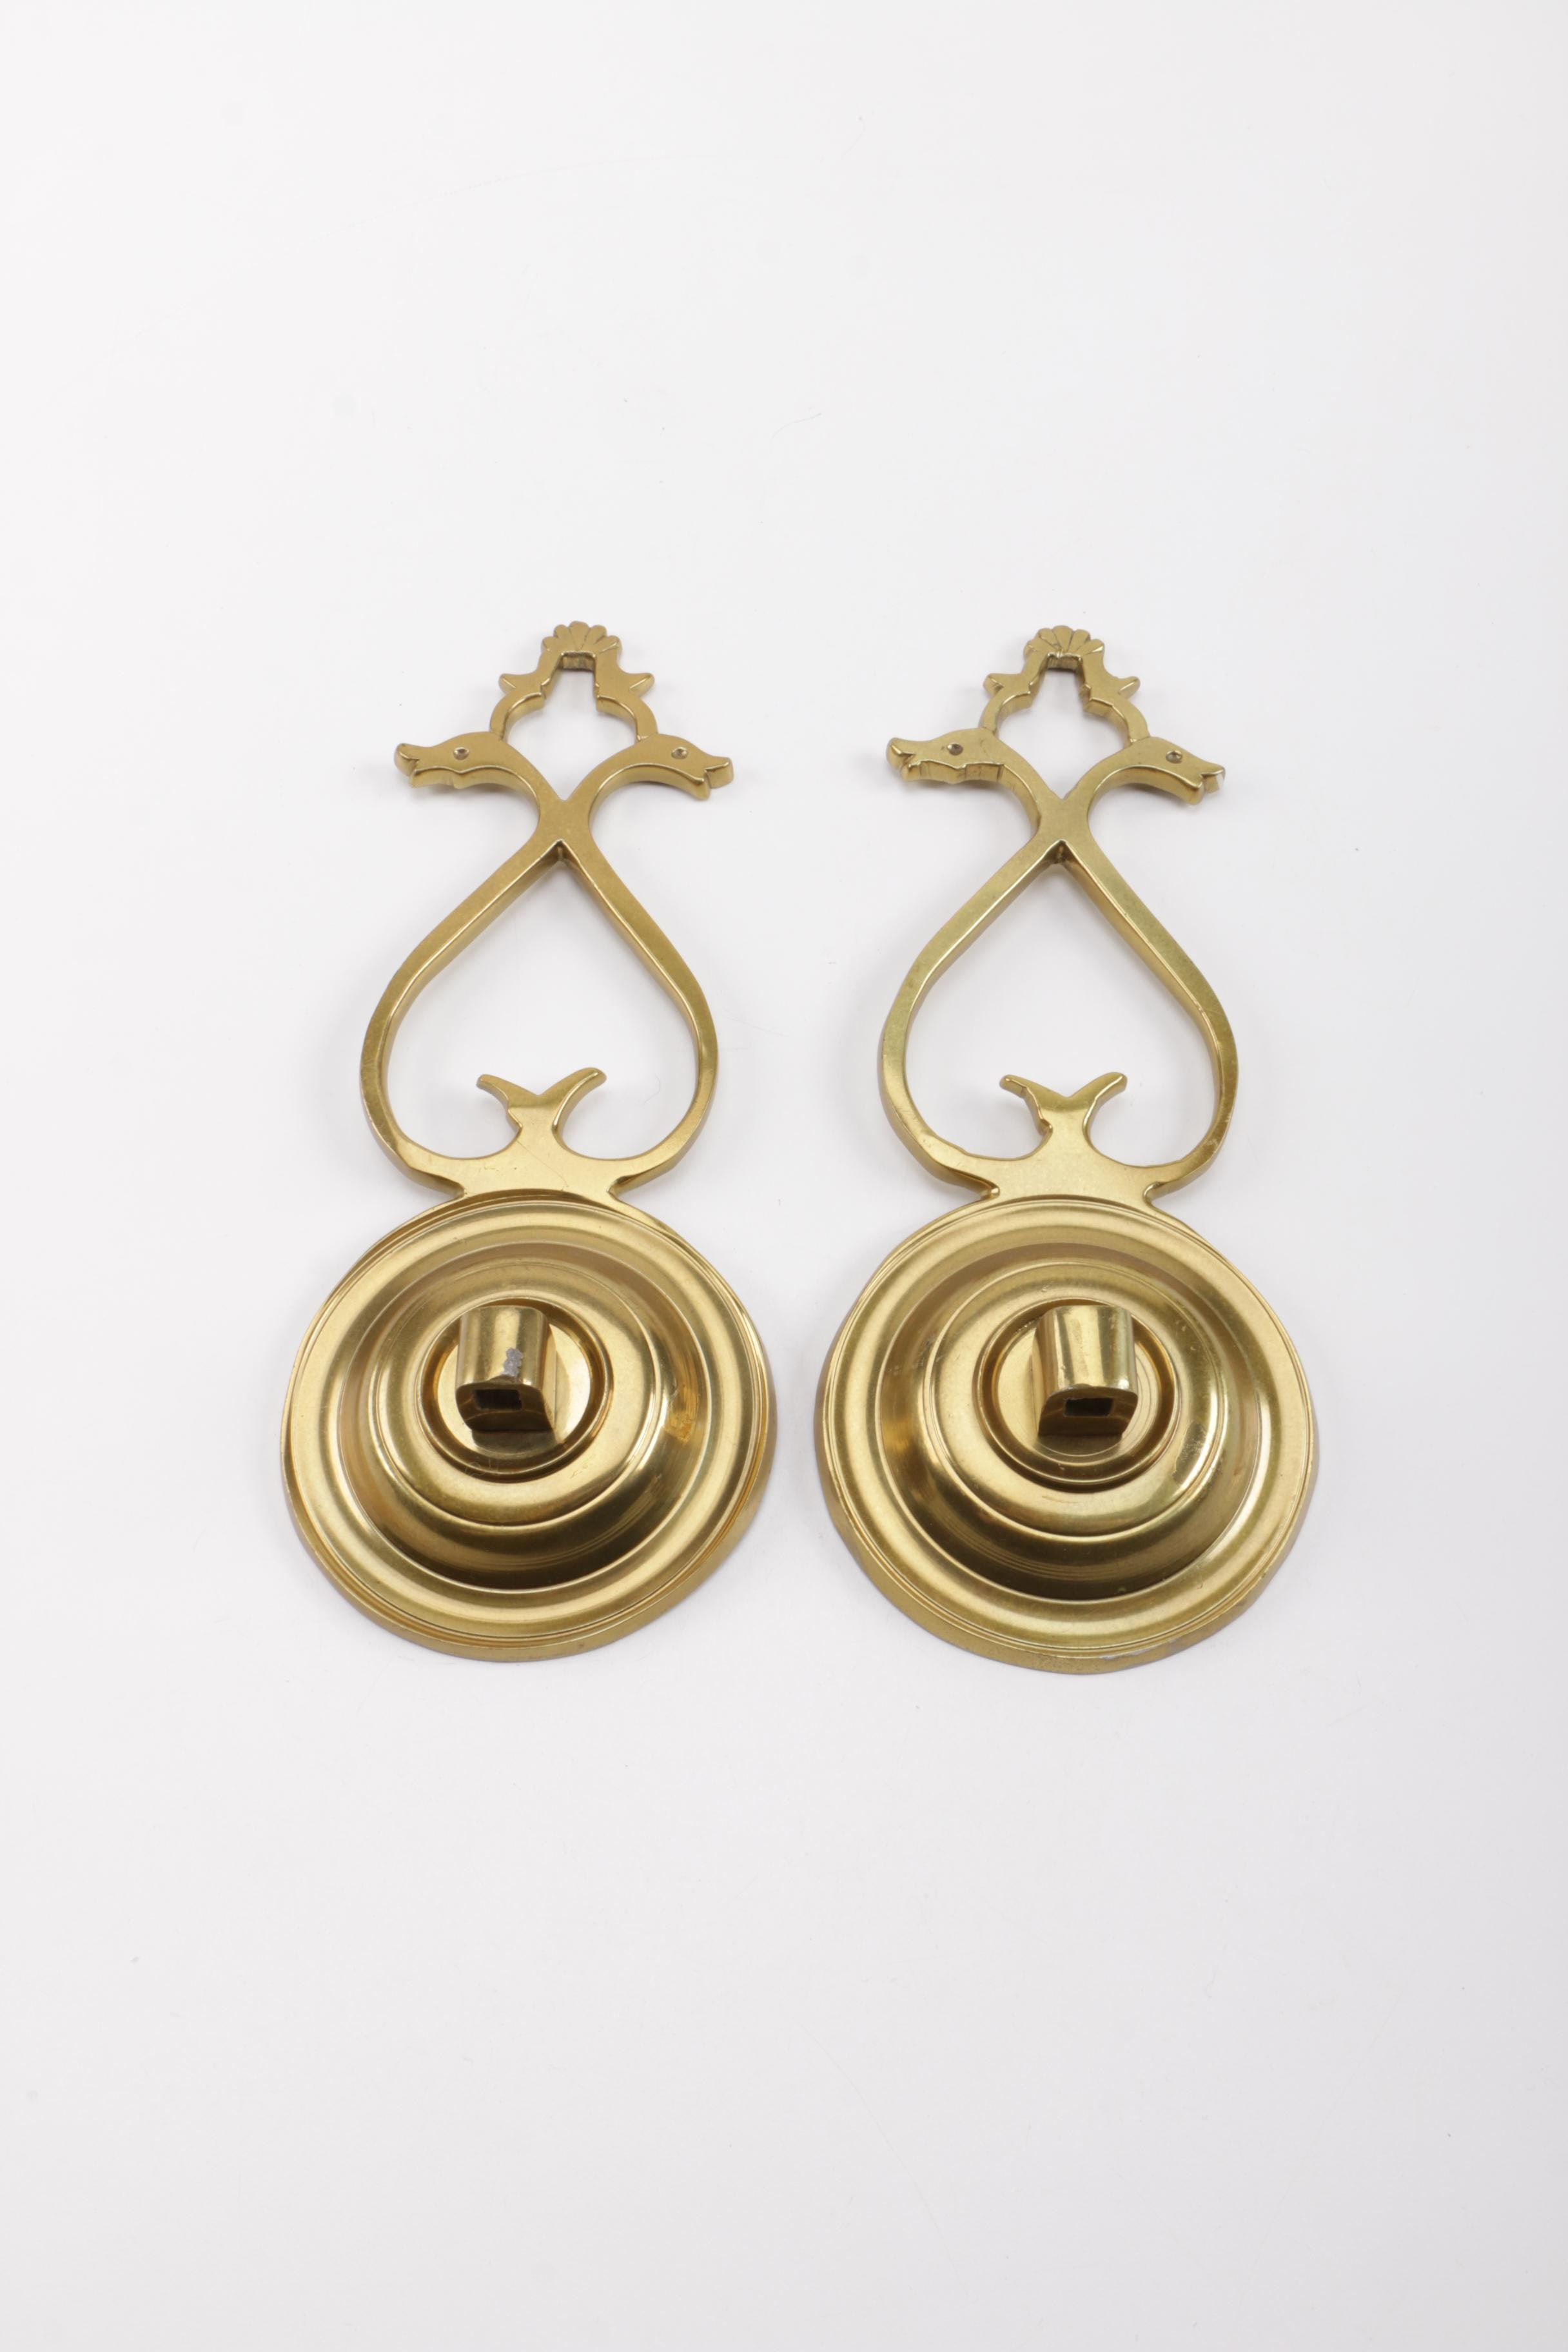 Pair of Wall Mount Brass Candle Holders